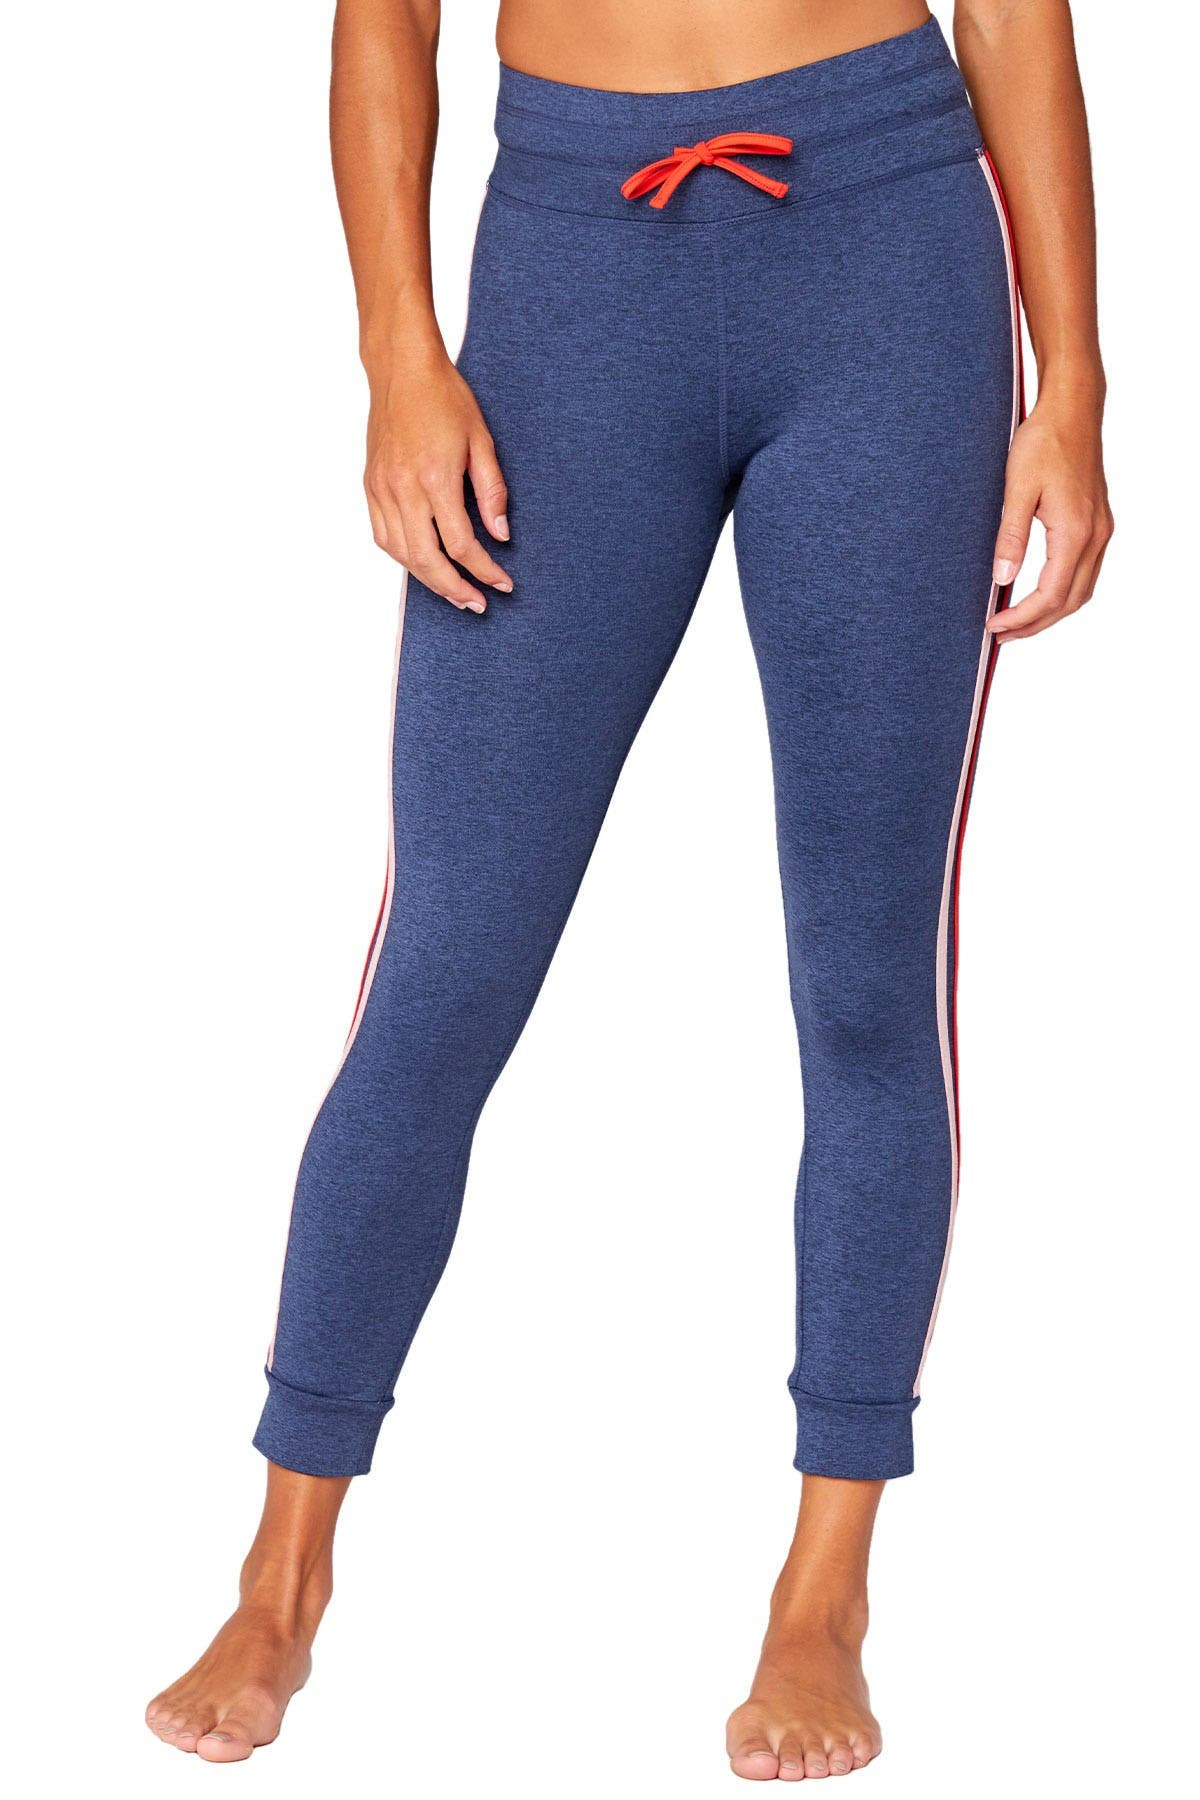 Image of Threads 4 Thought Invigorate High Waist Jogger Leggings